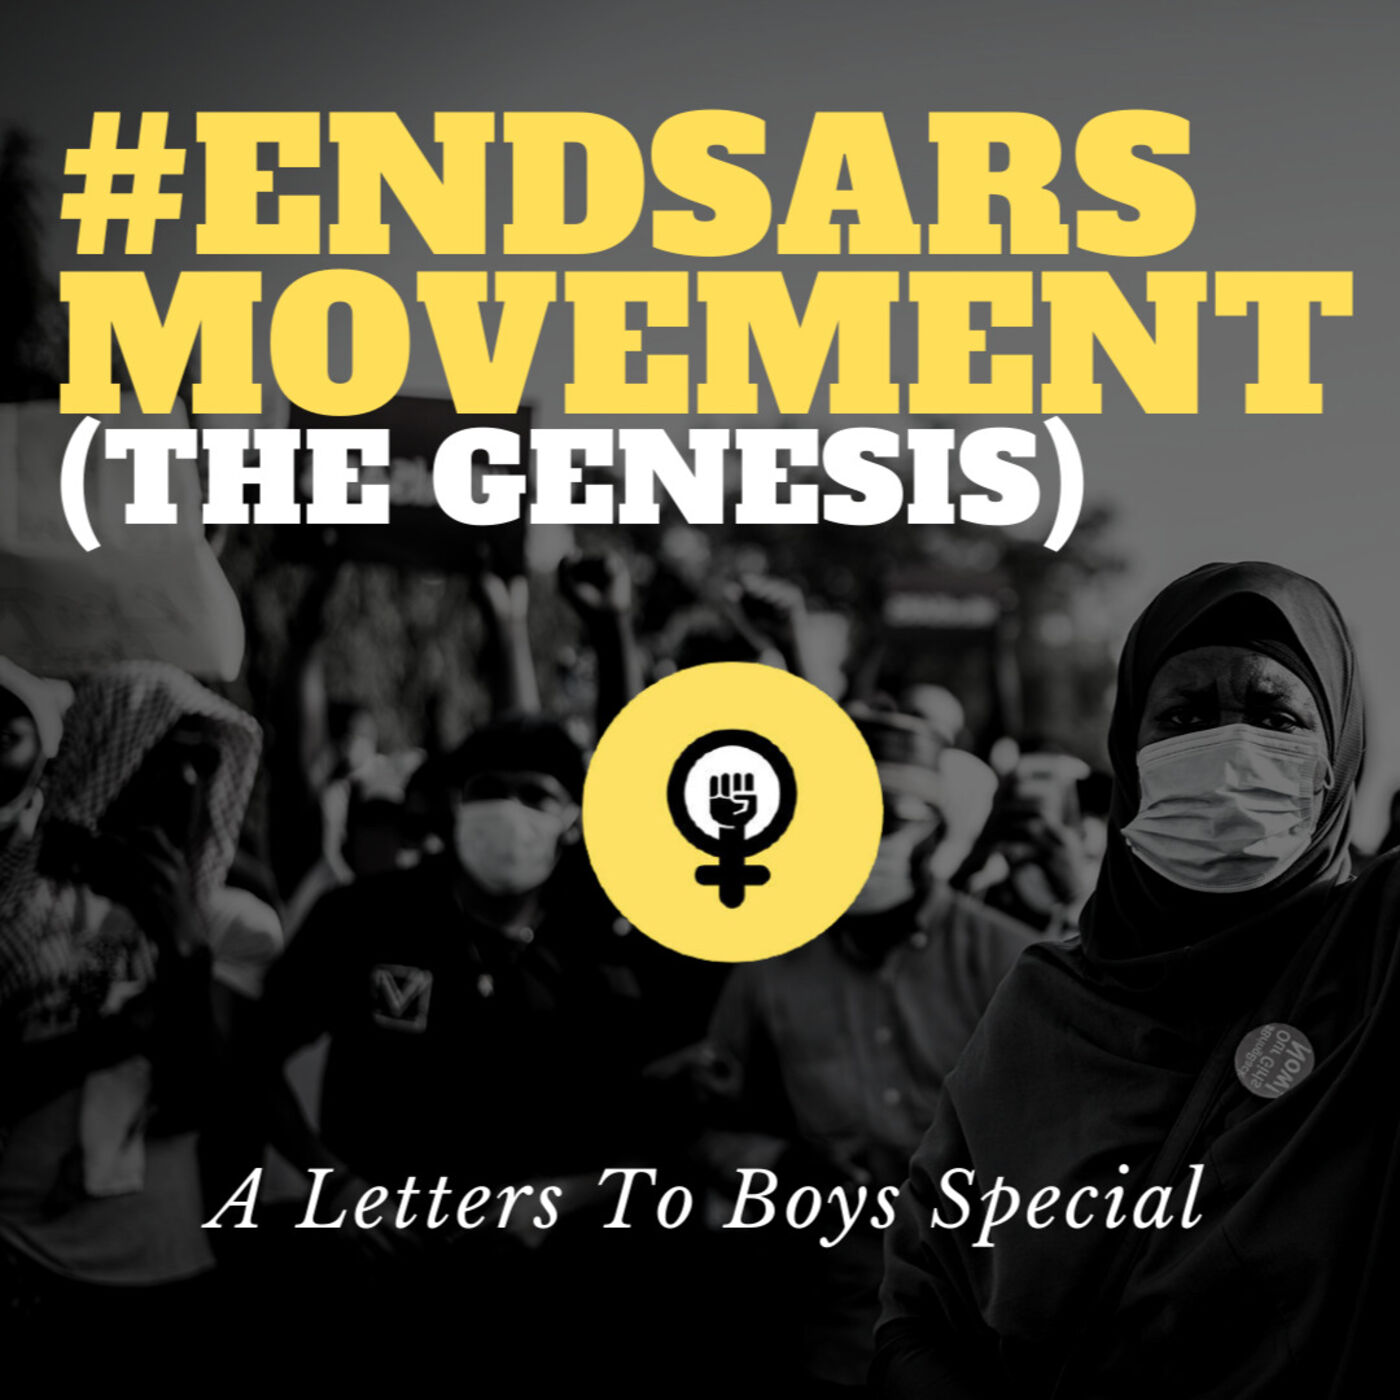 ENDSARS MOVEMENT: (THE GENESIS) | A Letters To Boys Special